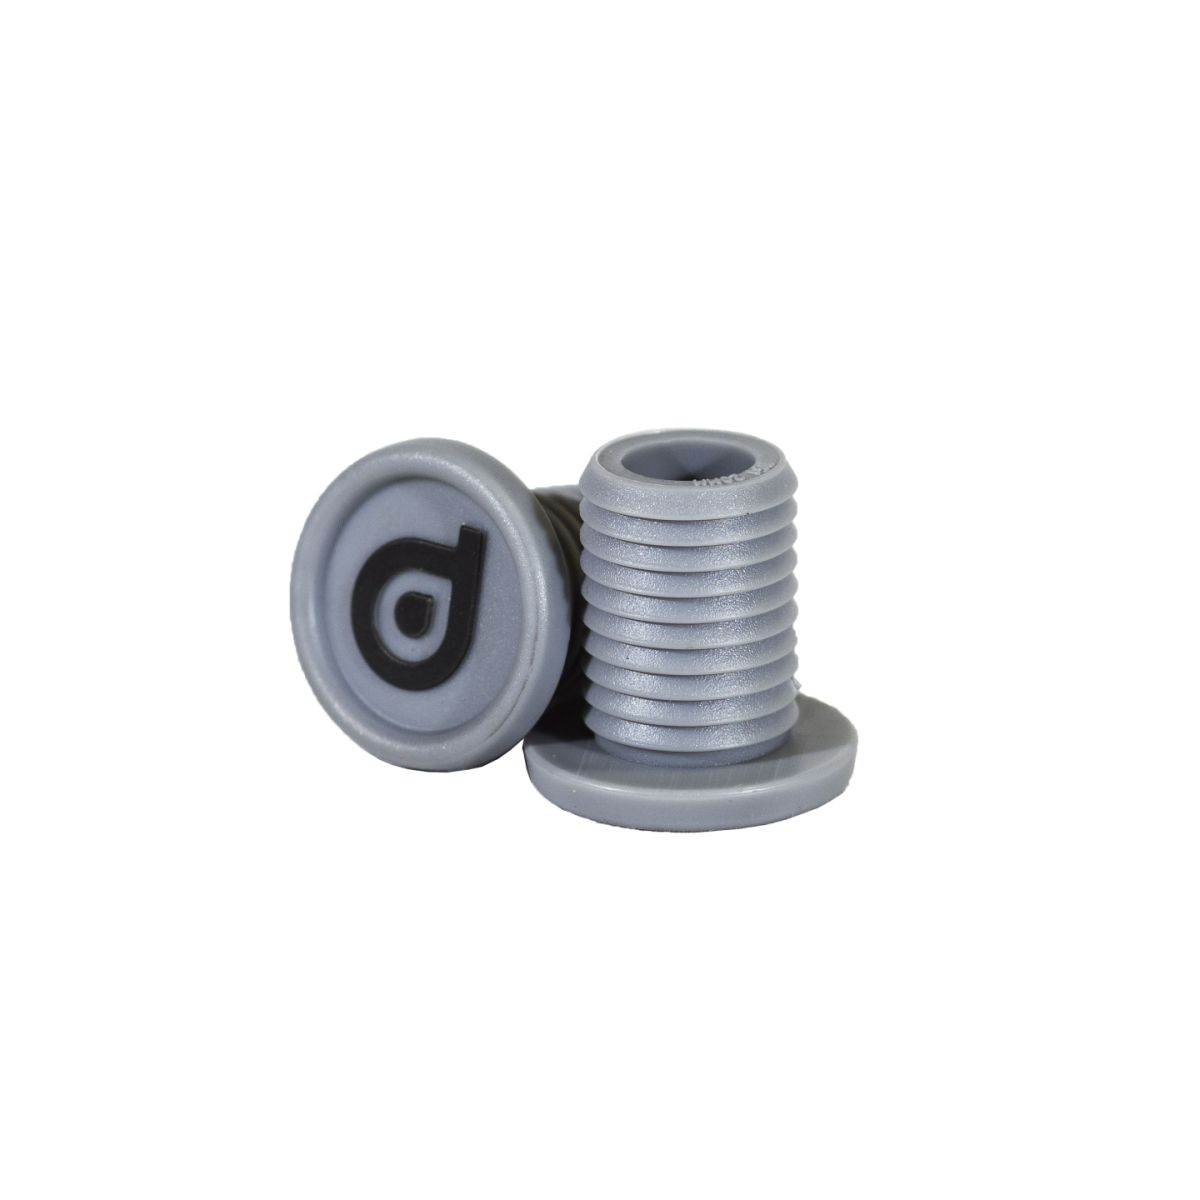 Barendy District S-Series Alu Bars Grey